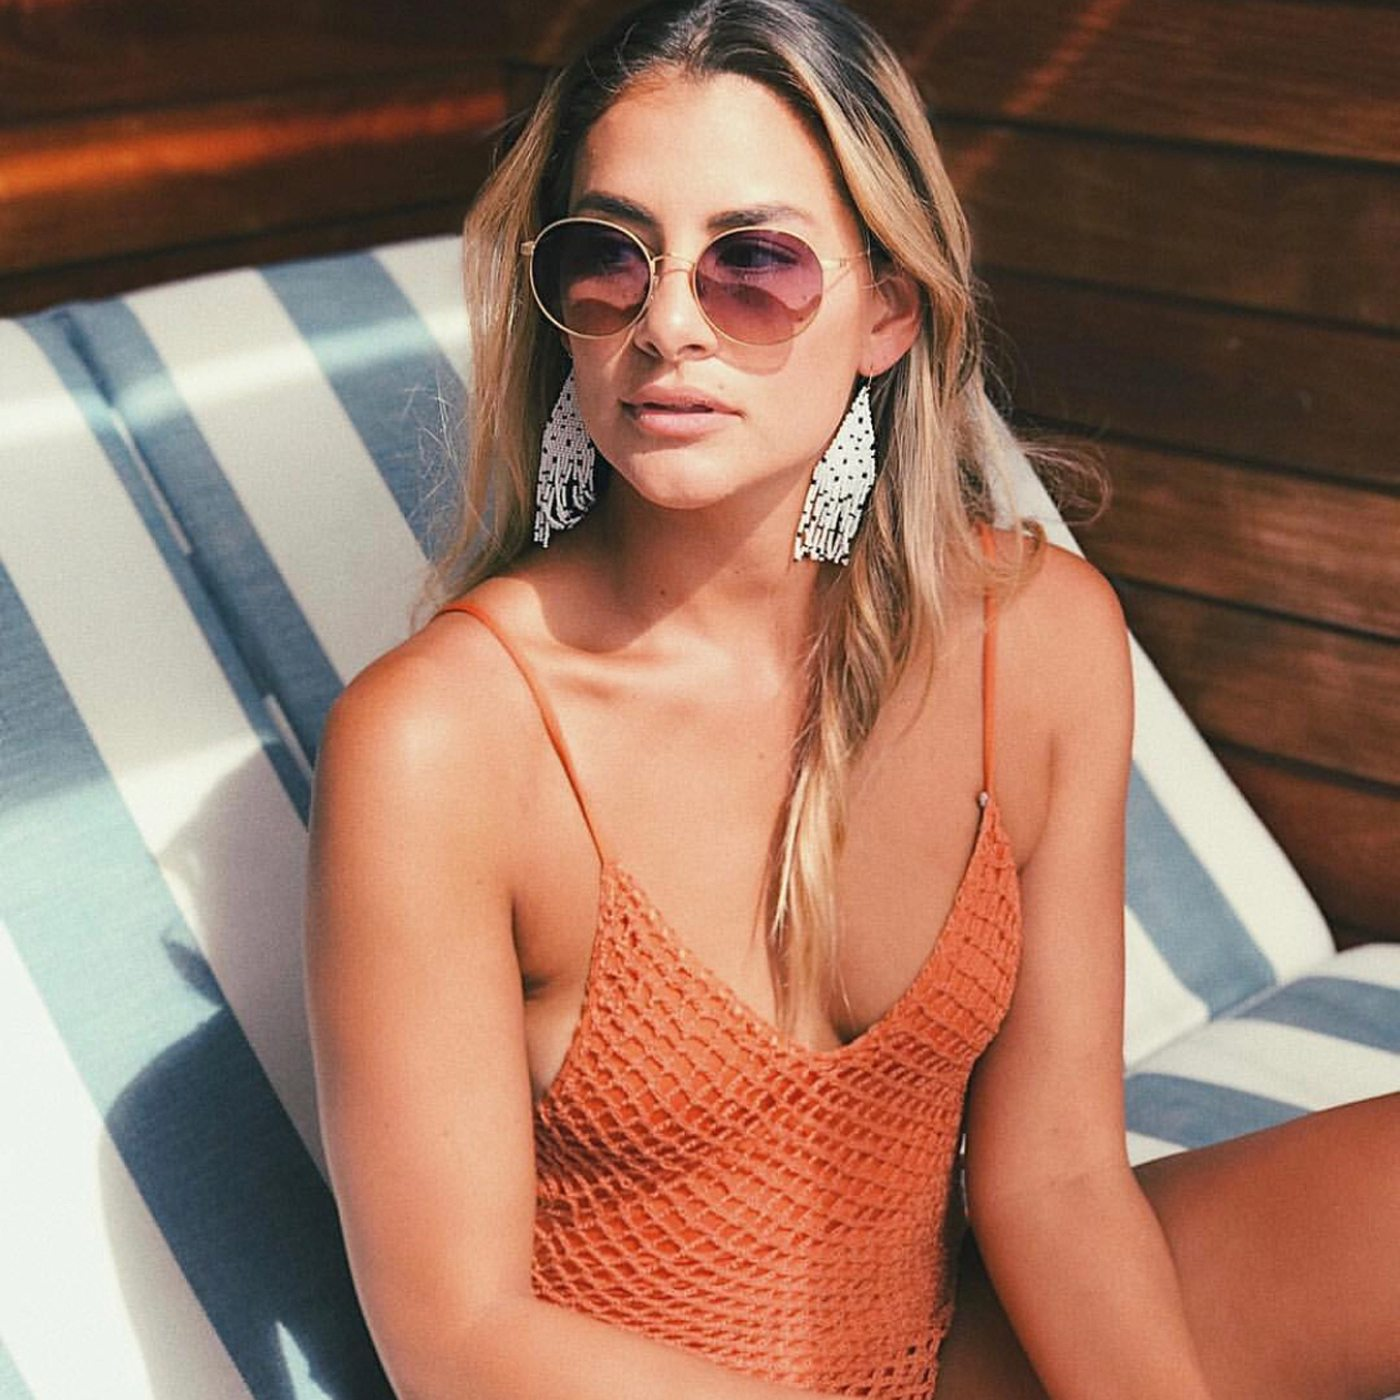 woman round wire sunglasses swimsuit summer